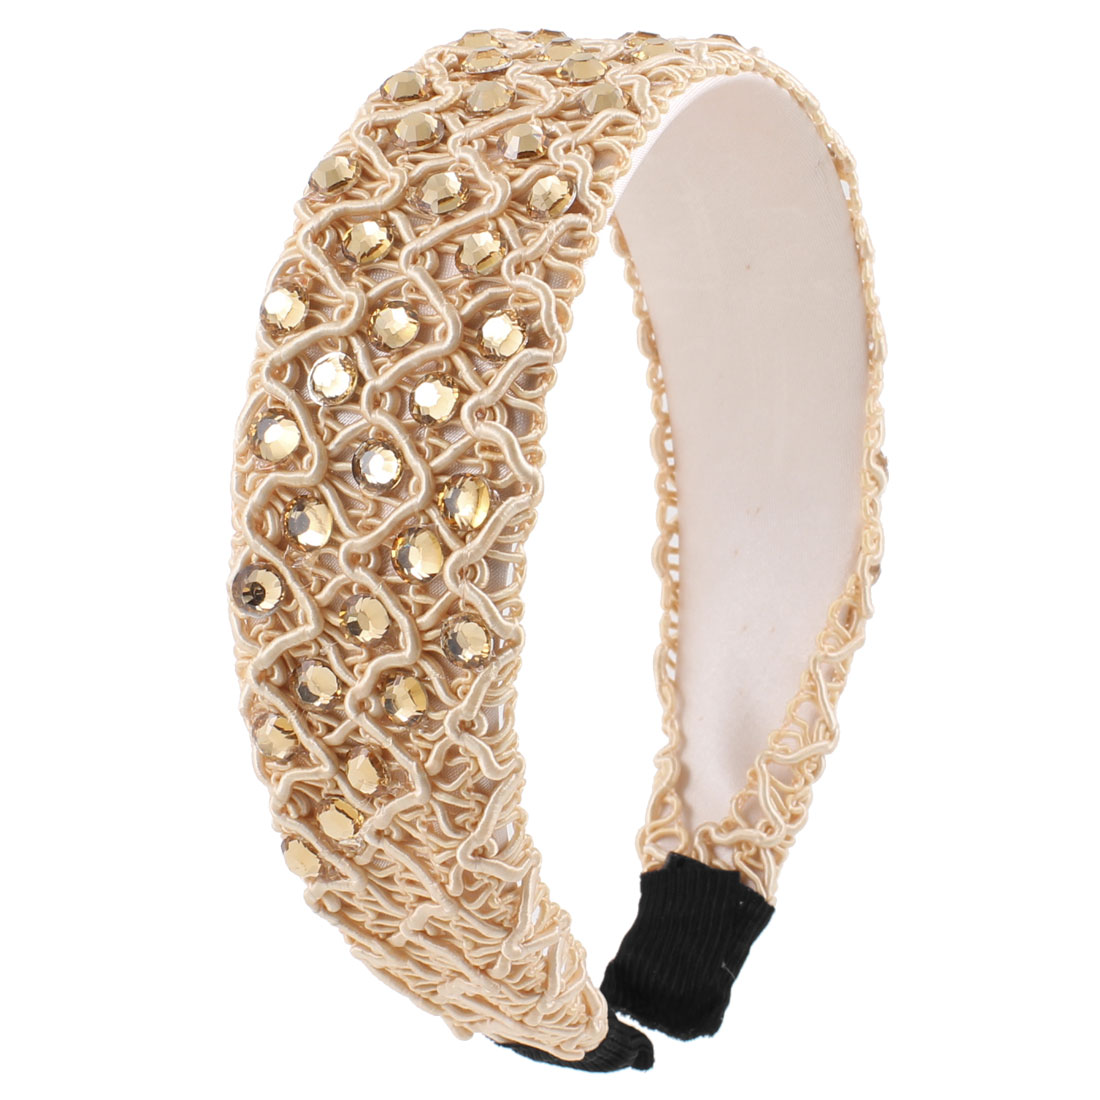 "Faux Crystal Bead 1.6"" Wide Headband Hairband Hair Hoop Beige for Lady"